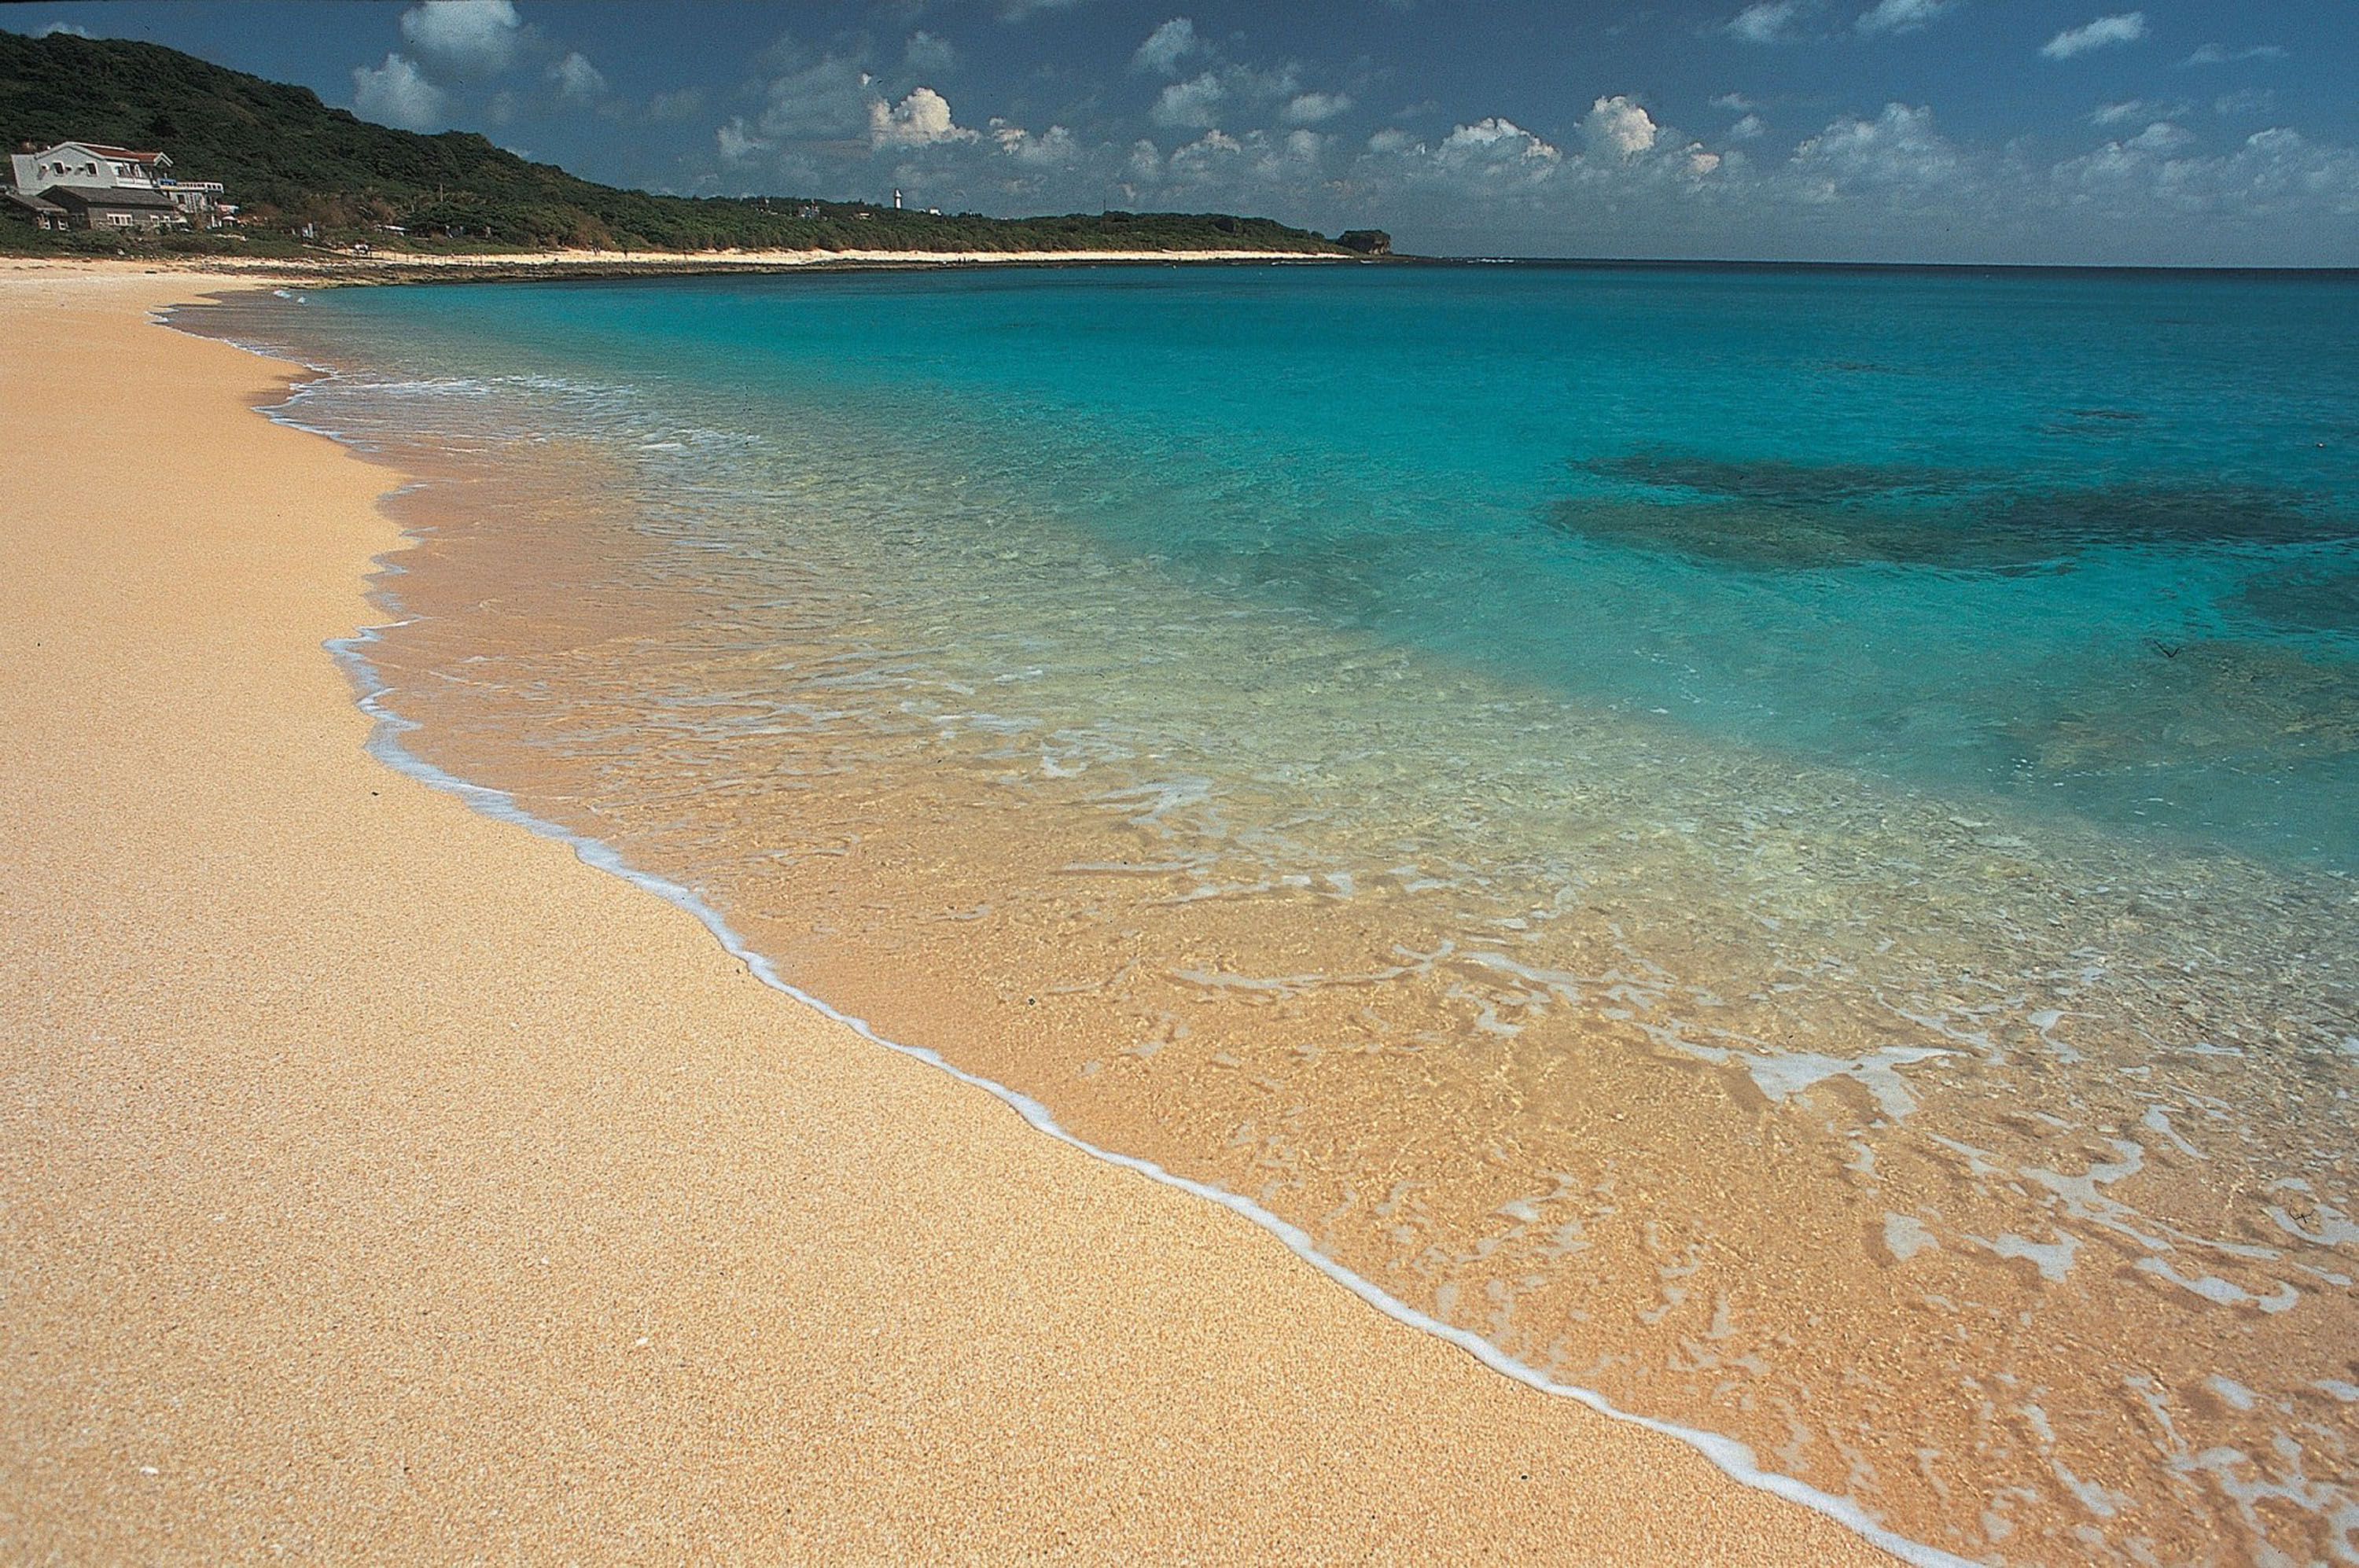 Kenting most-visited national park in Taiwan